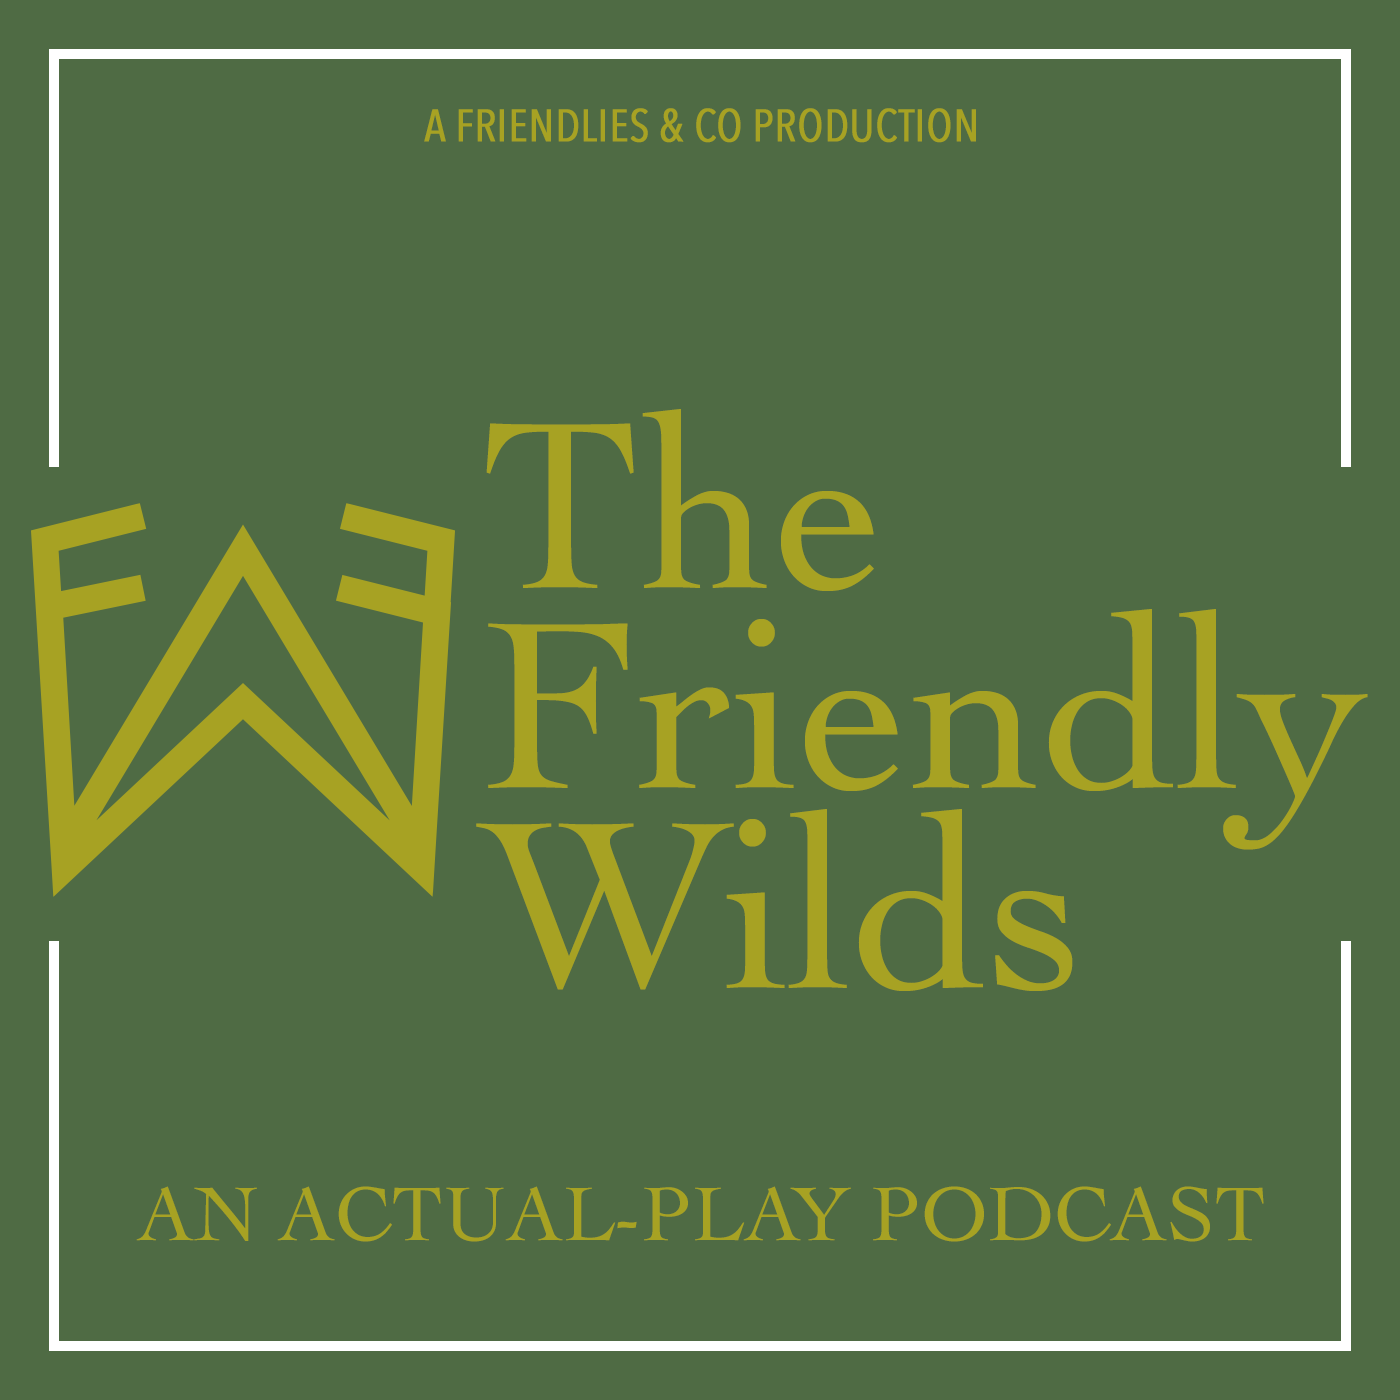 The Friendly Wilds